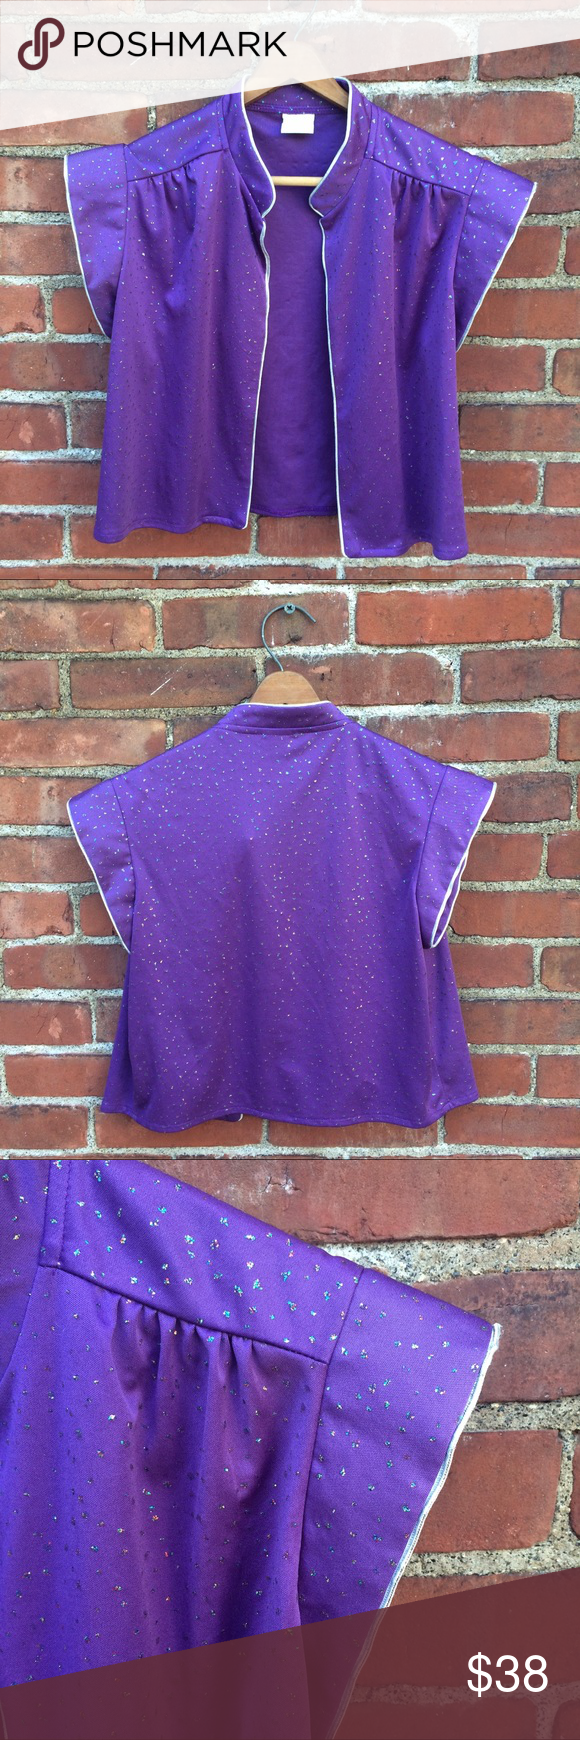 Vintage RollerGirl  Bolero Jacket Super fun in excellent condition ... this roller girl bolero was definitely cruising down the strip and swinging in the disco halls . 1970s vintage measurement : 17.5 length / 15.5 across / sleeves are 8 inches opening Vintage Tops Crop Tops